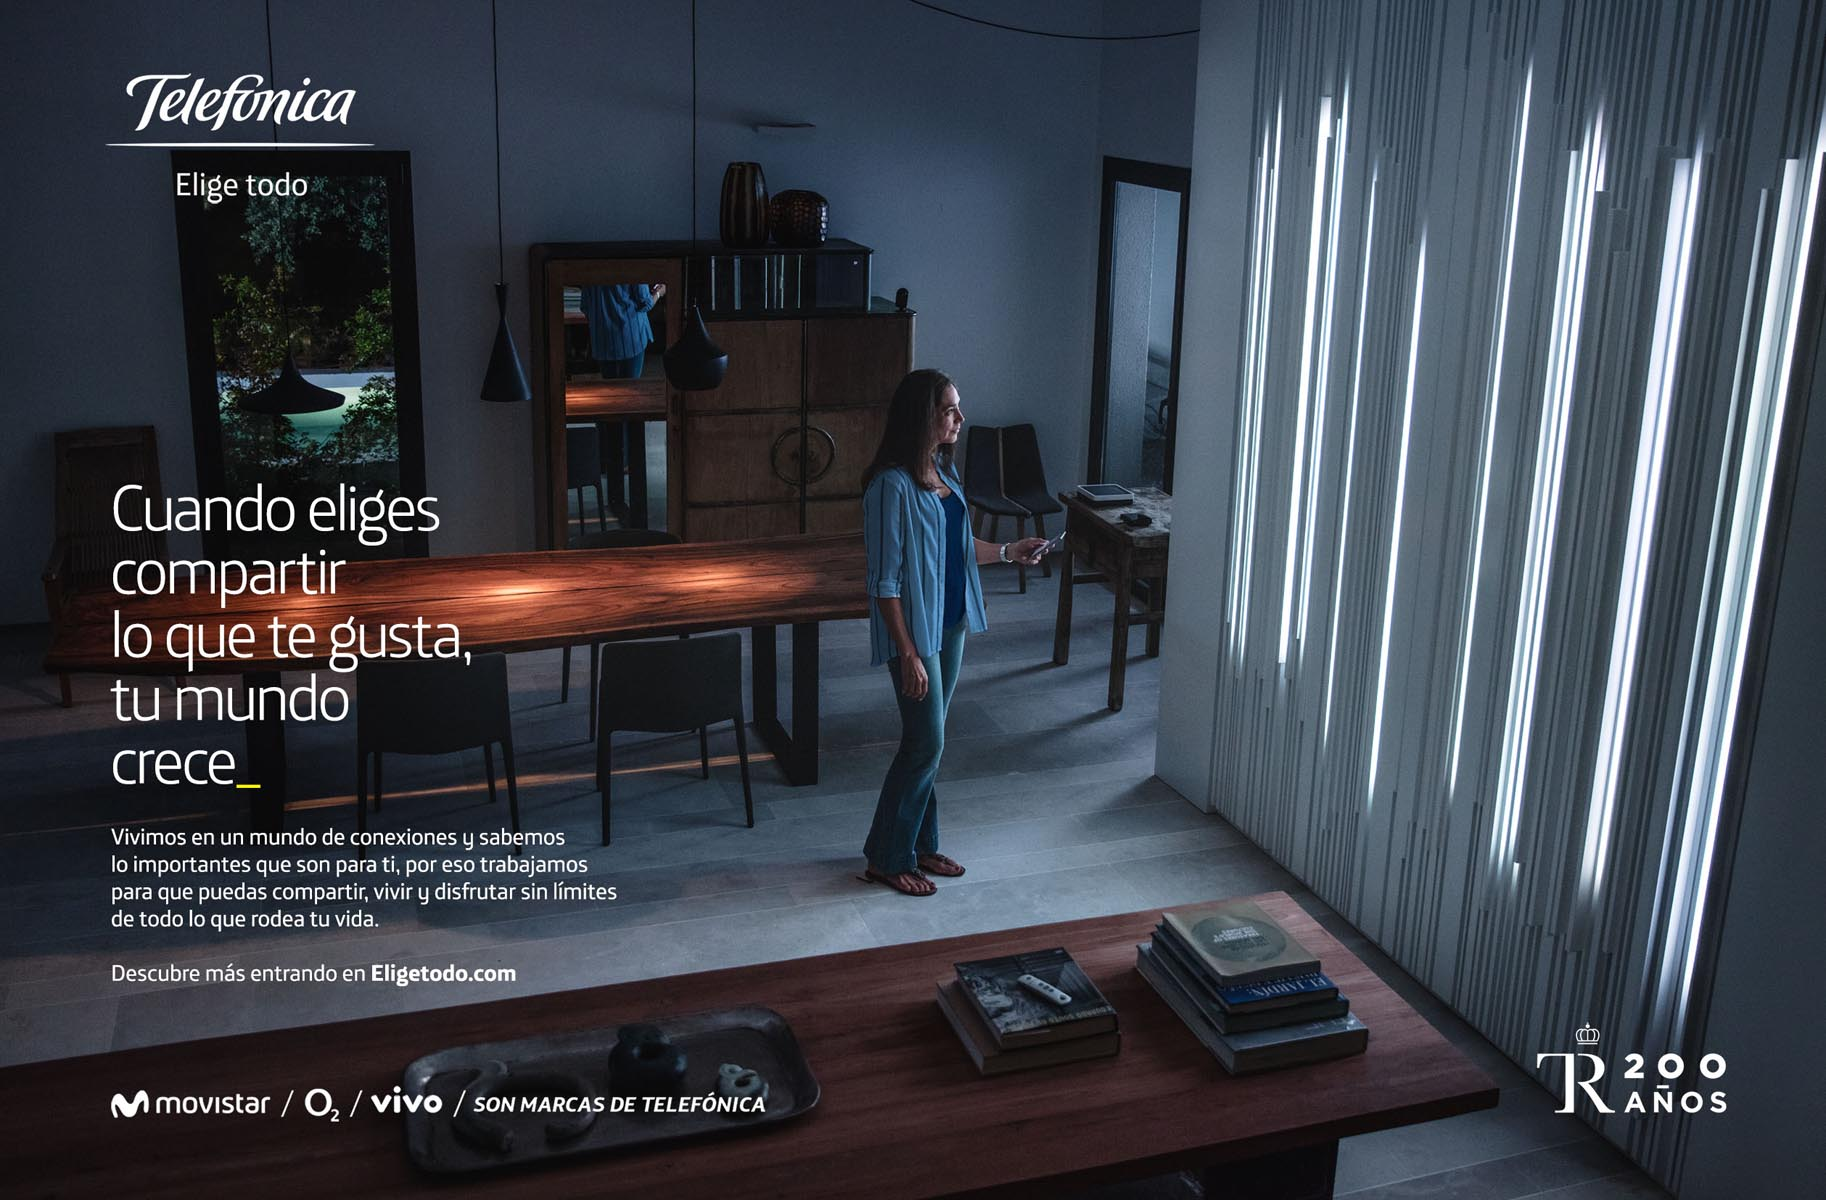 MOVISTAR GALAXIA | YOUNG & RUBICAM